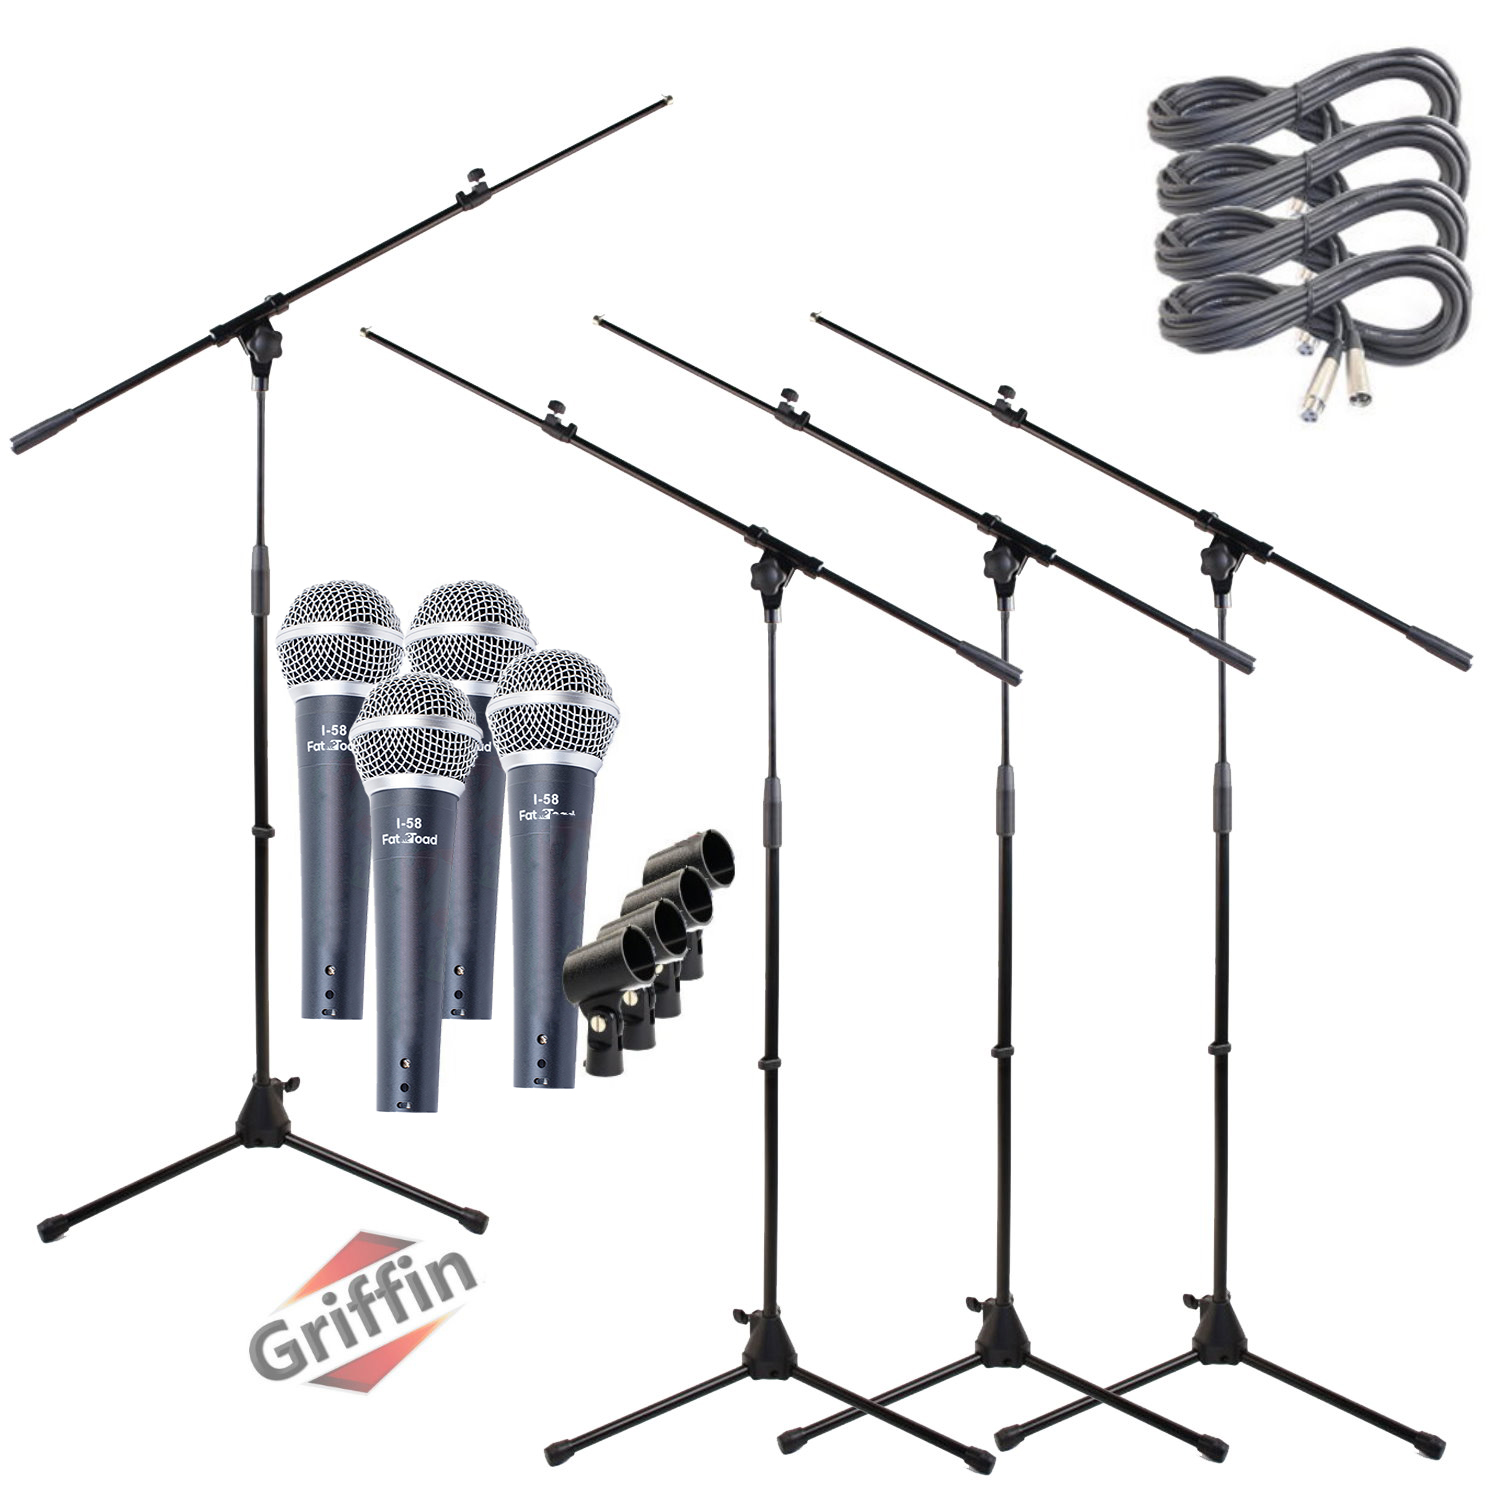 Cardioid Dynamic Microphones with Mic Boom Stands, XLR Cables and Clips 4 Pack by Griffin